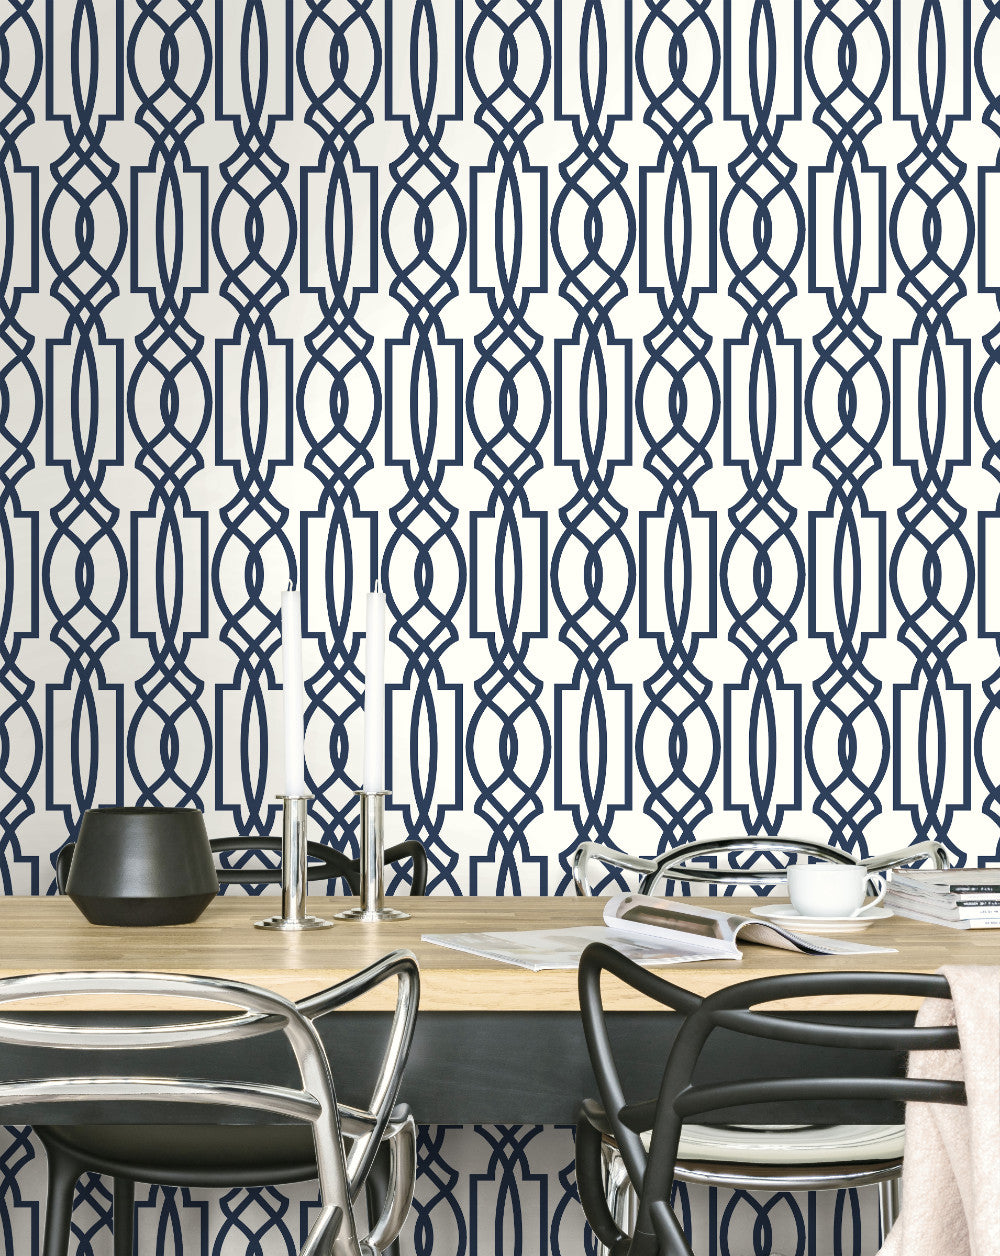 Deco Lattice Peel And Stick Wallpaper In Navy By Nextwall